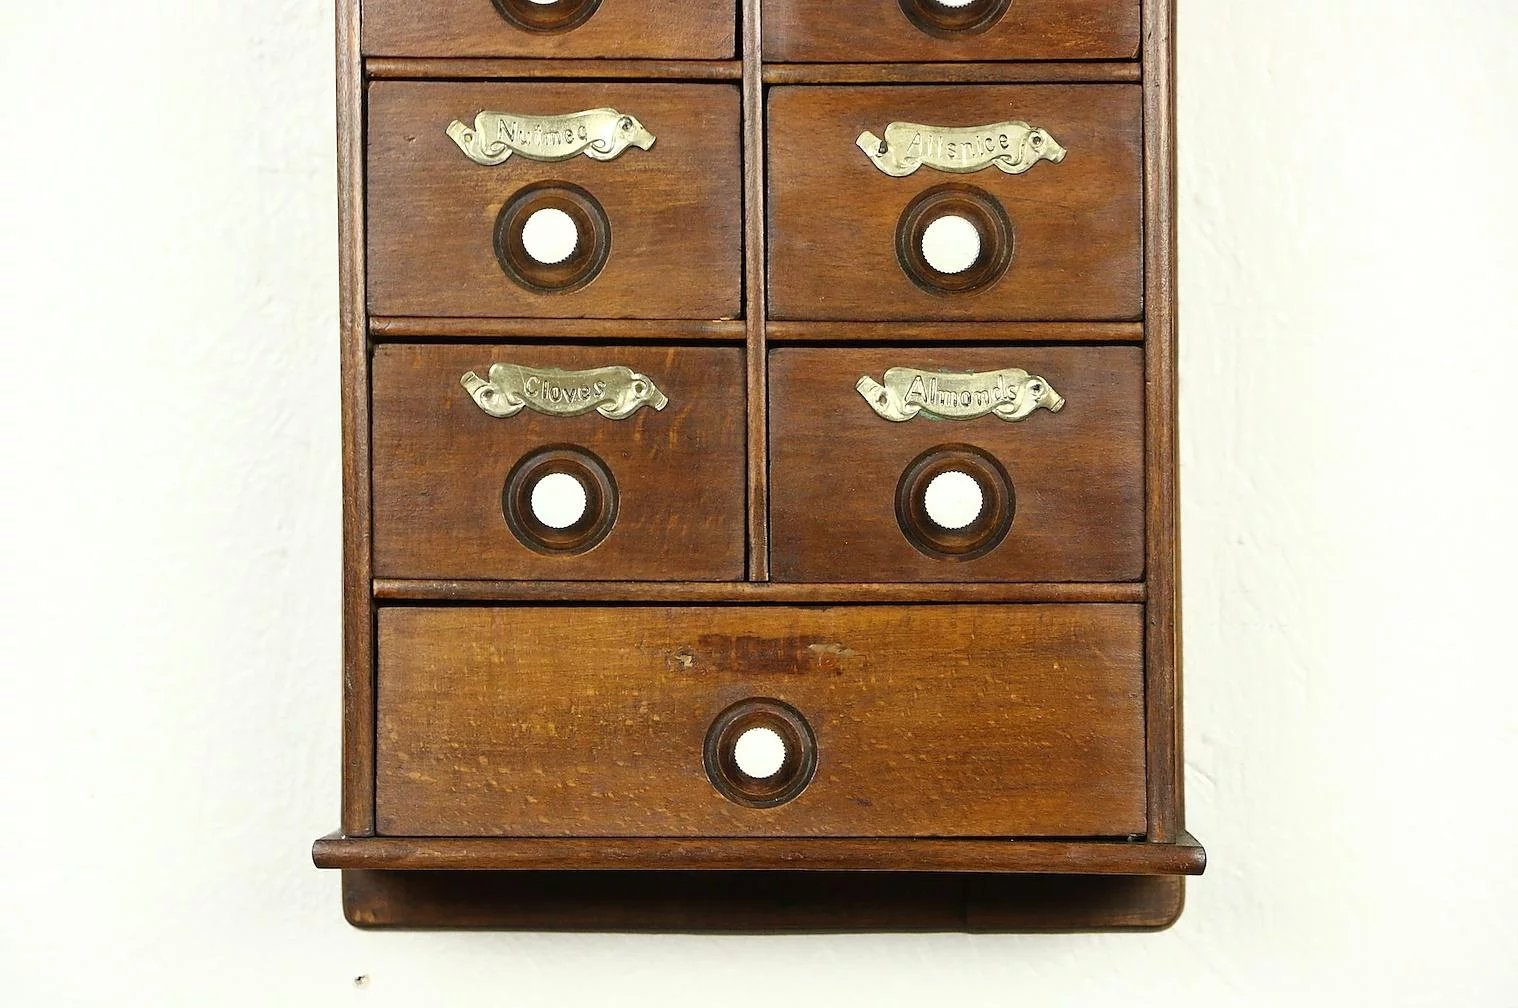 Click to expand - Spice Cabinet, 1910 Antique Hanging Or Countertop, 9 Drawers : Harp